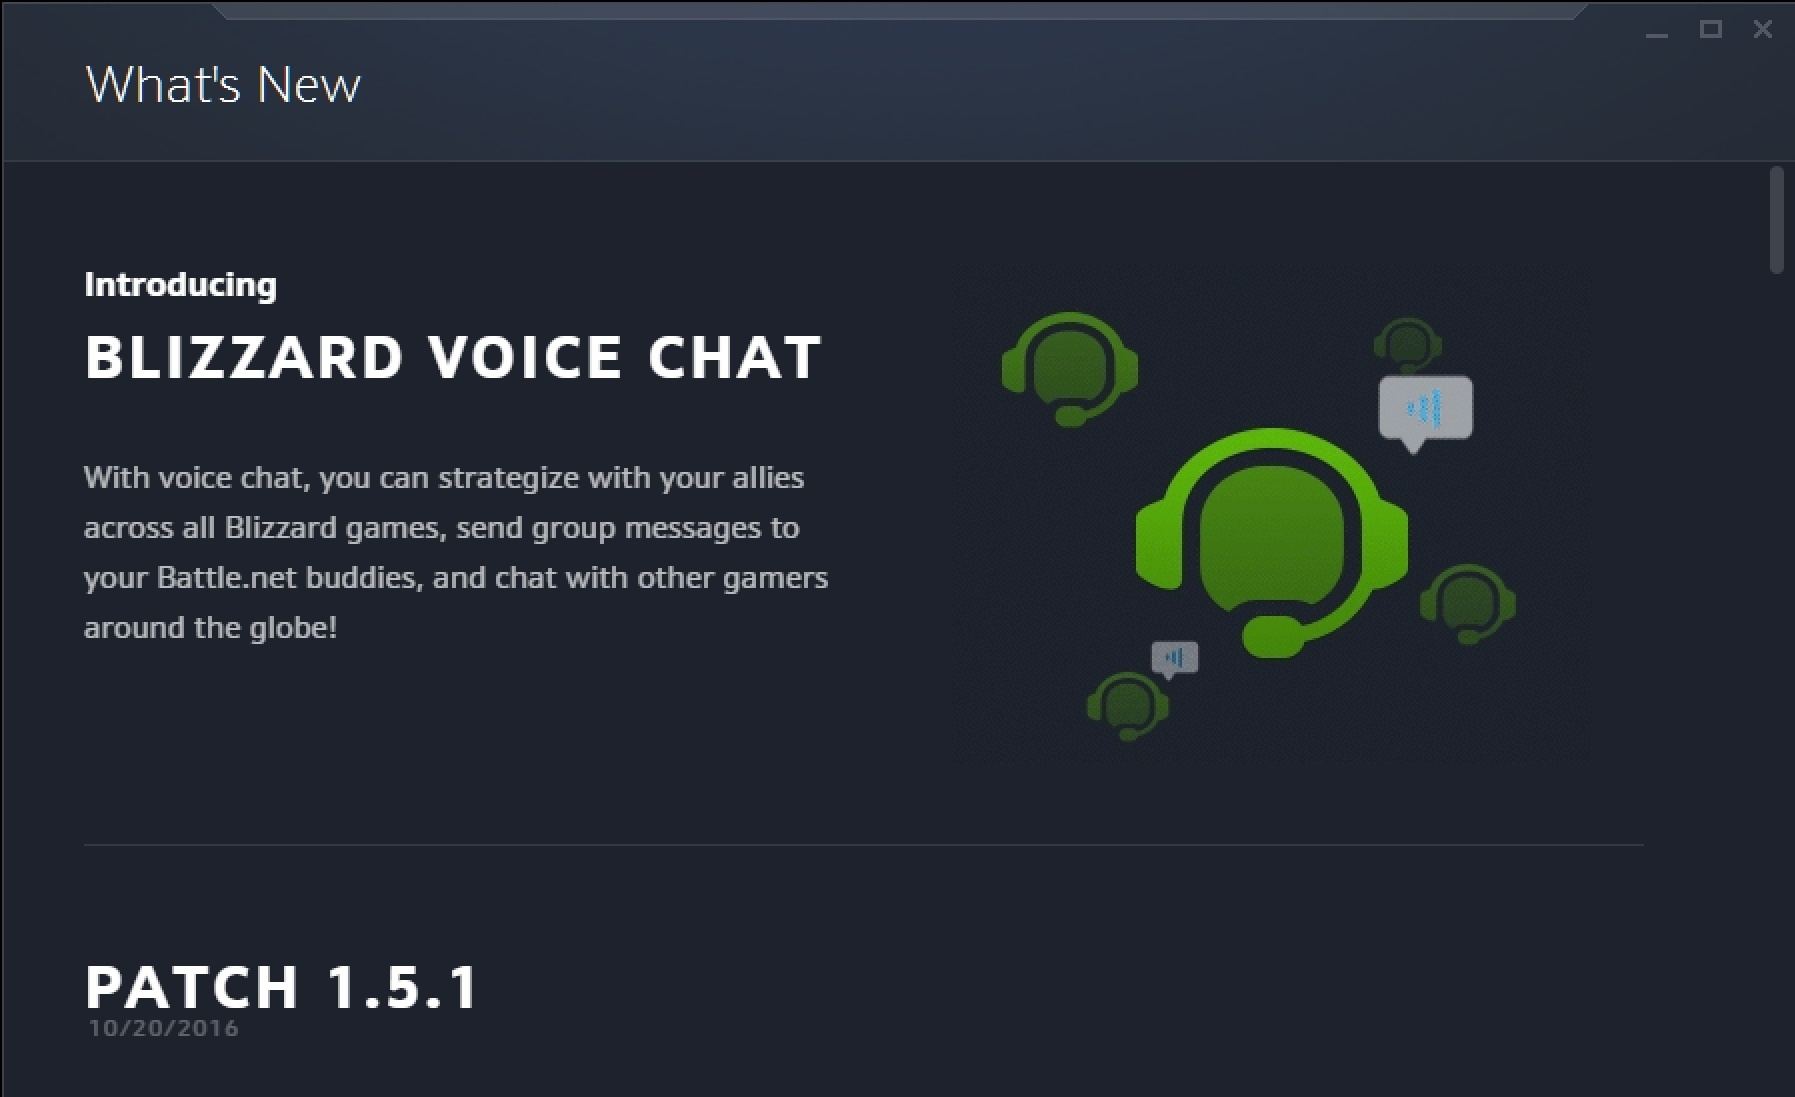 No voice chat in wow